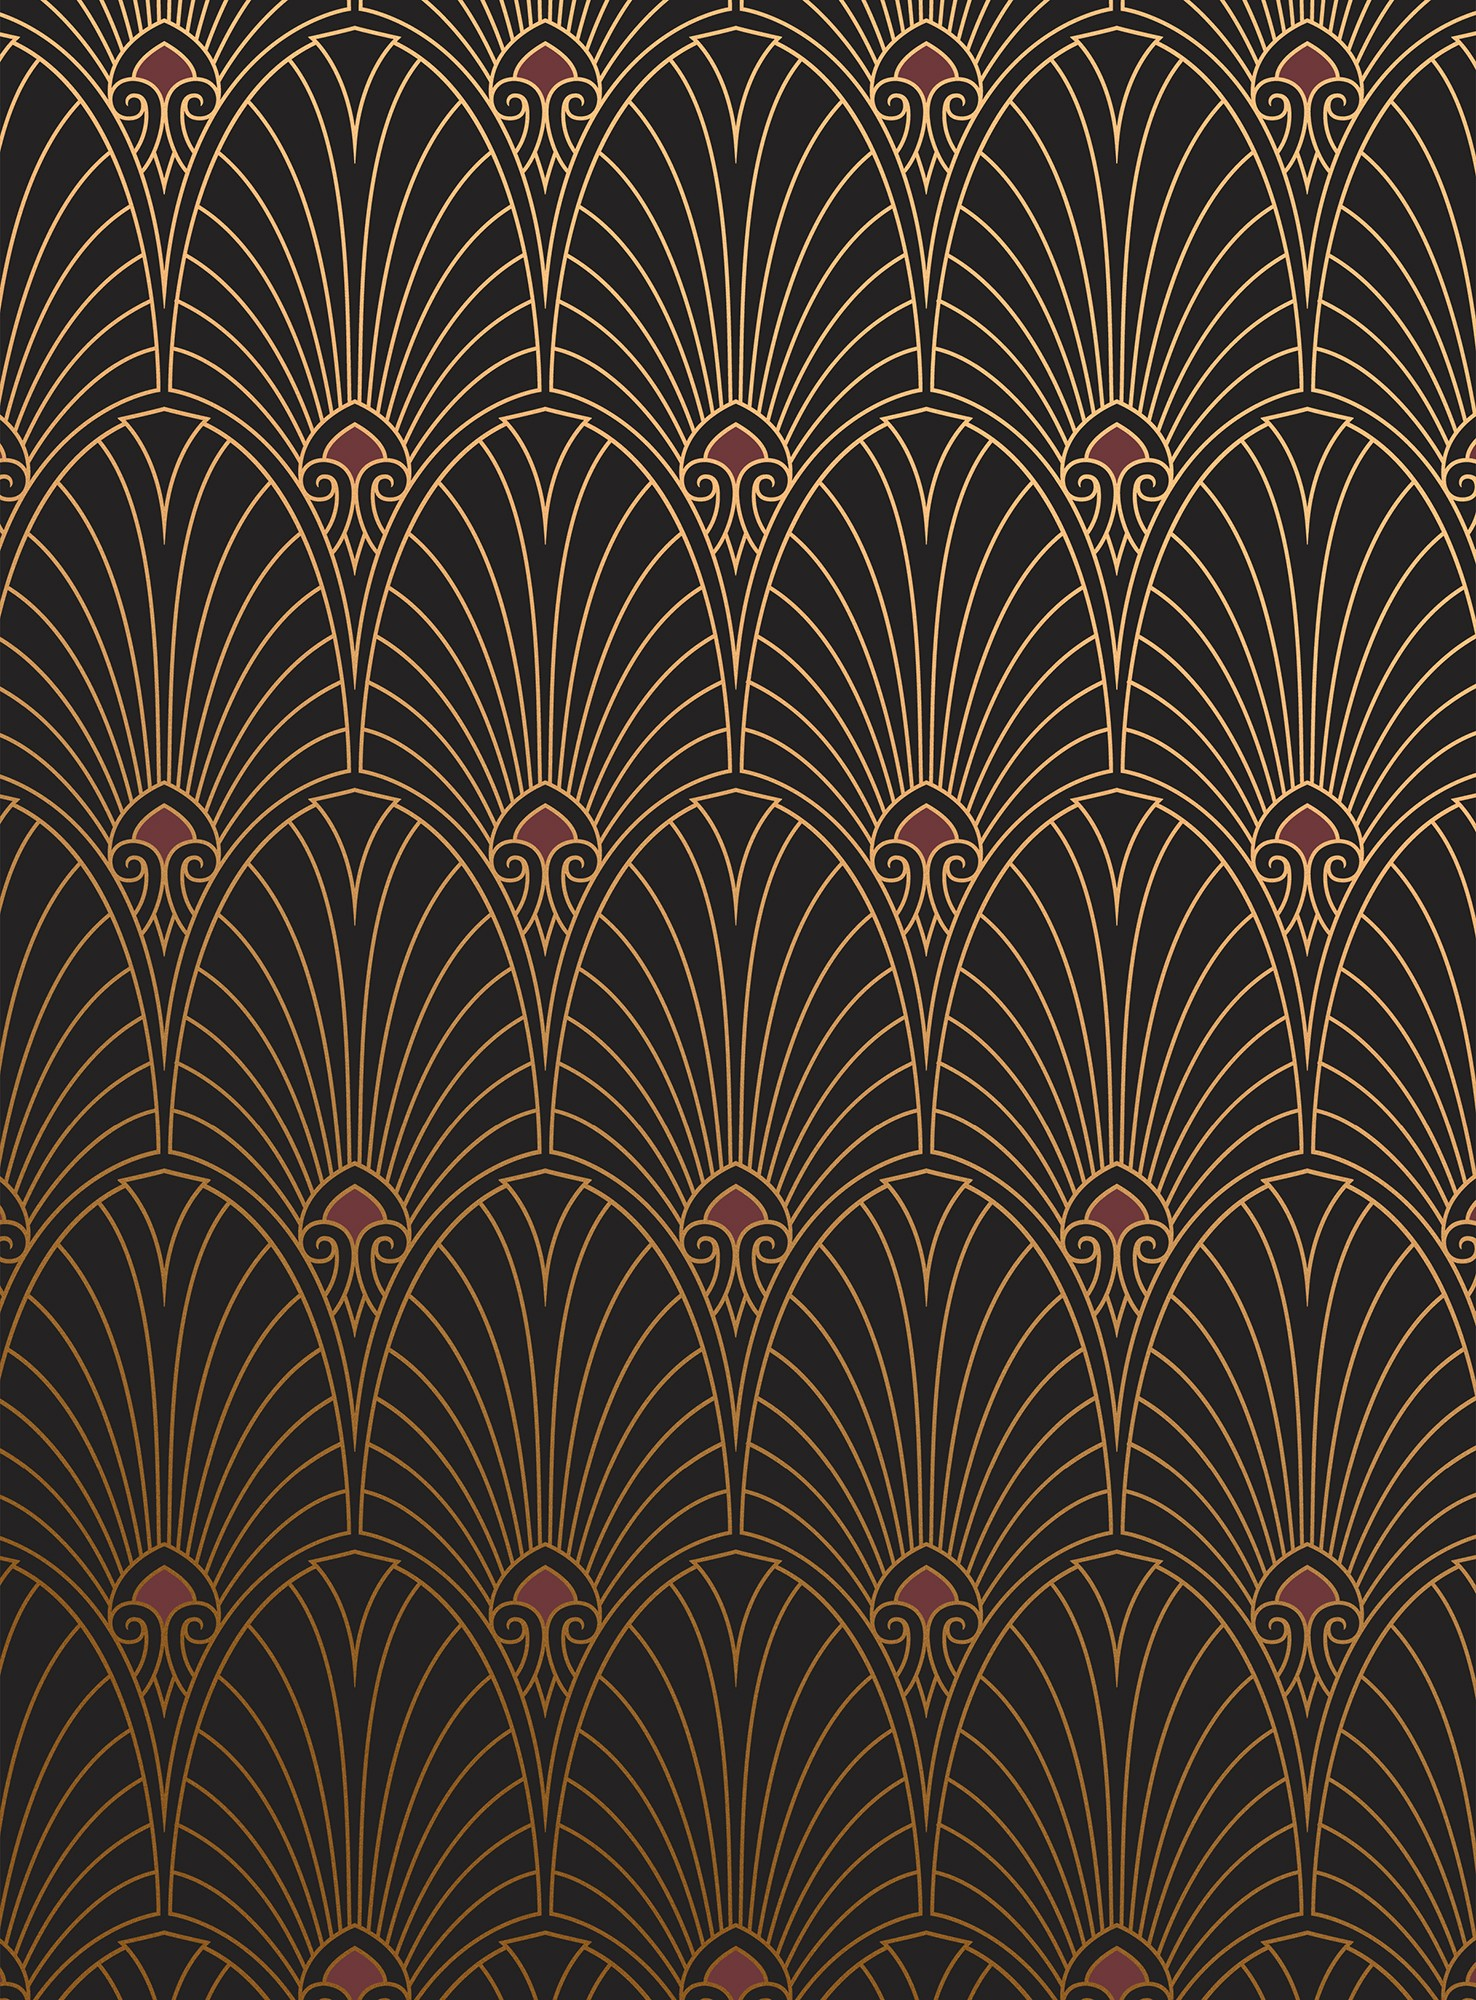 Papier Peint Wall And Deco Art Deco Wallpaper ① Download Free Cool Hd Wallpapers For